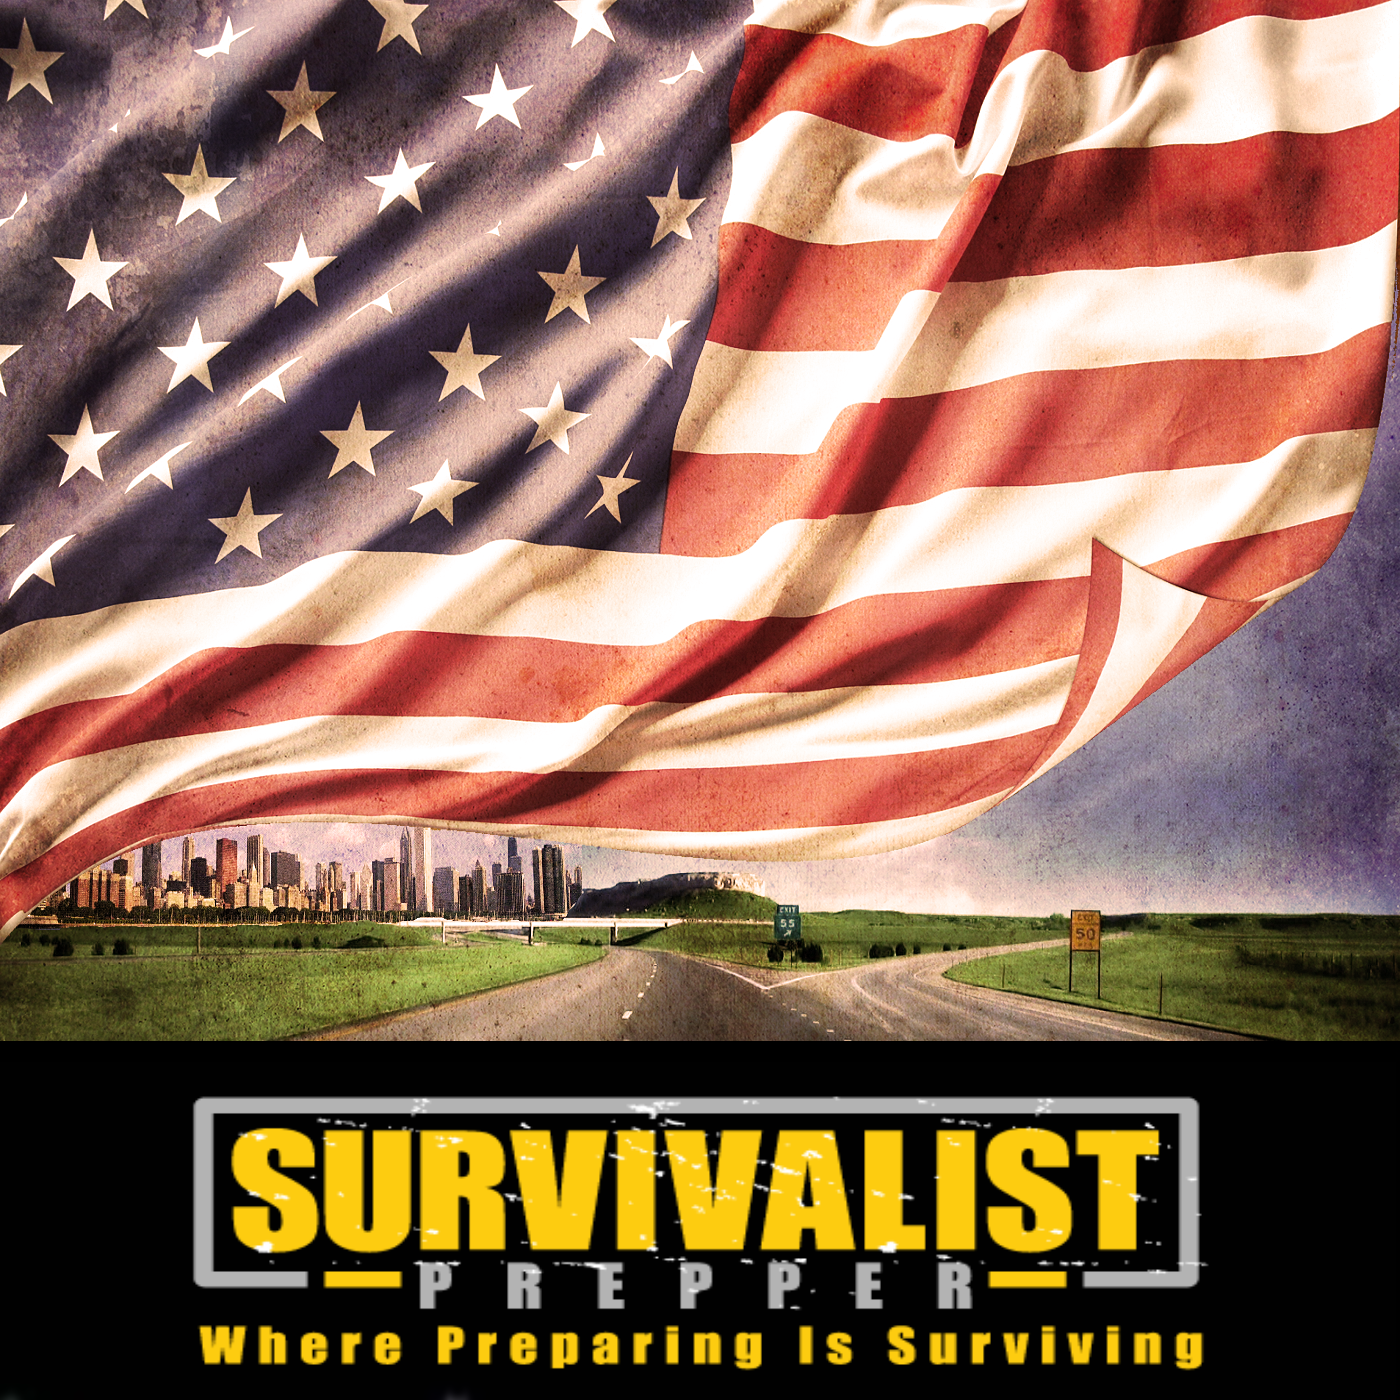 Survivalist Prepper All About Preppers And Prepping, Survival and Self Sufficiency.